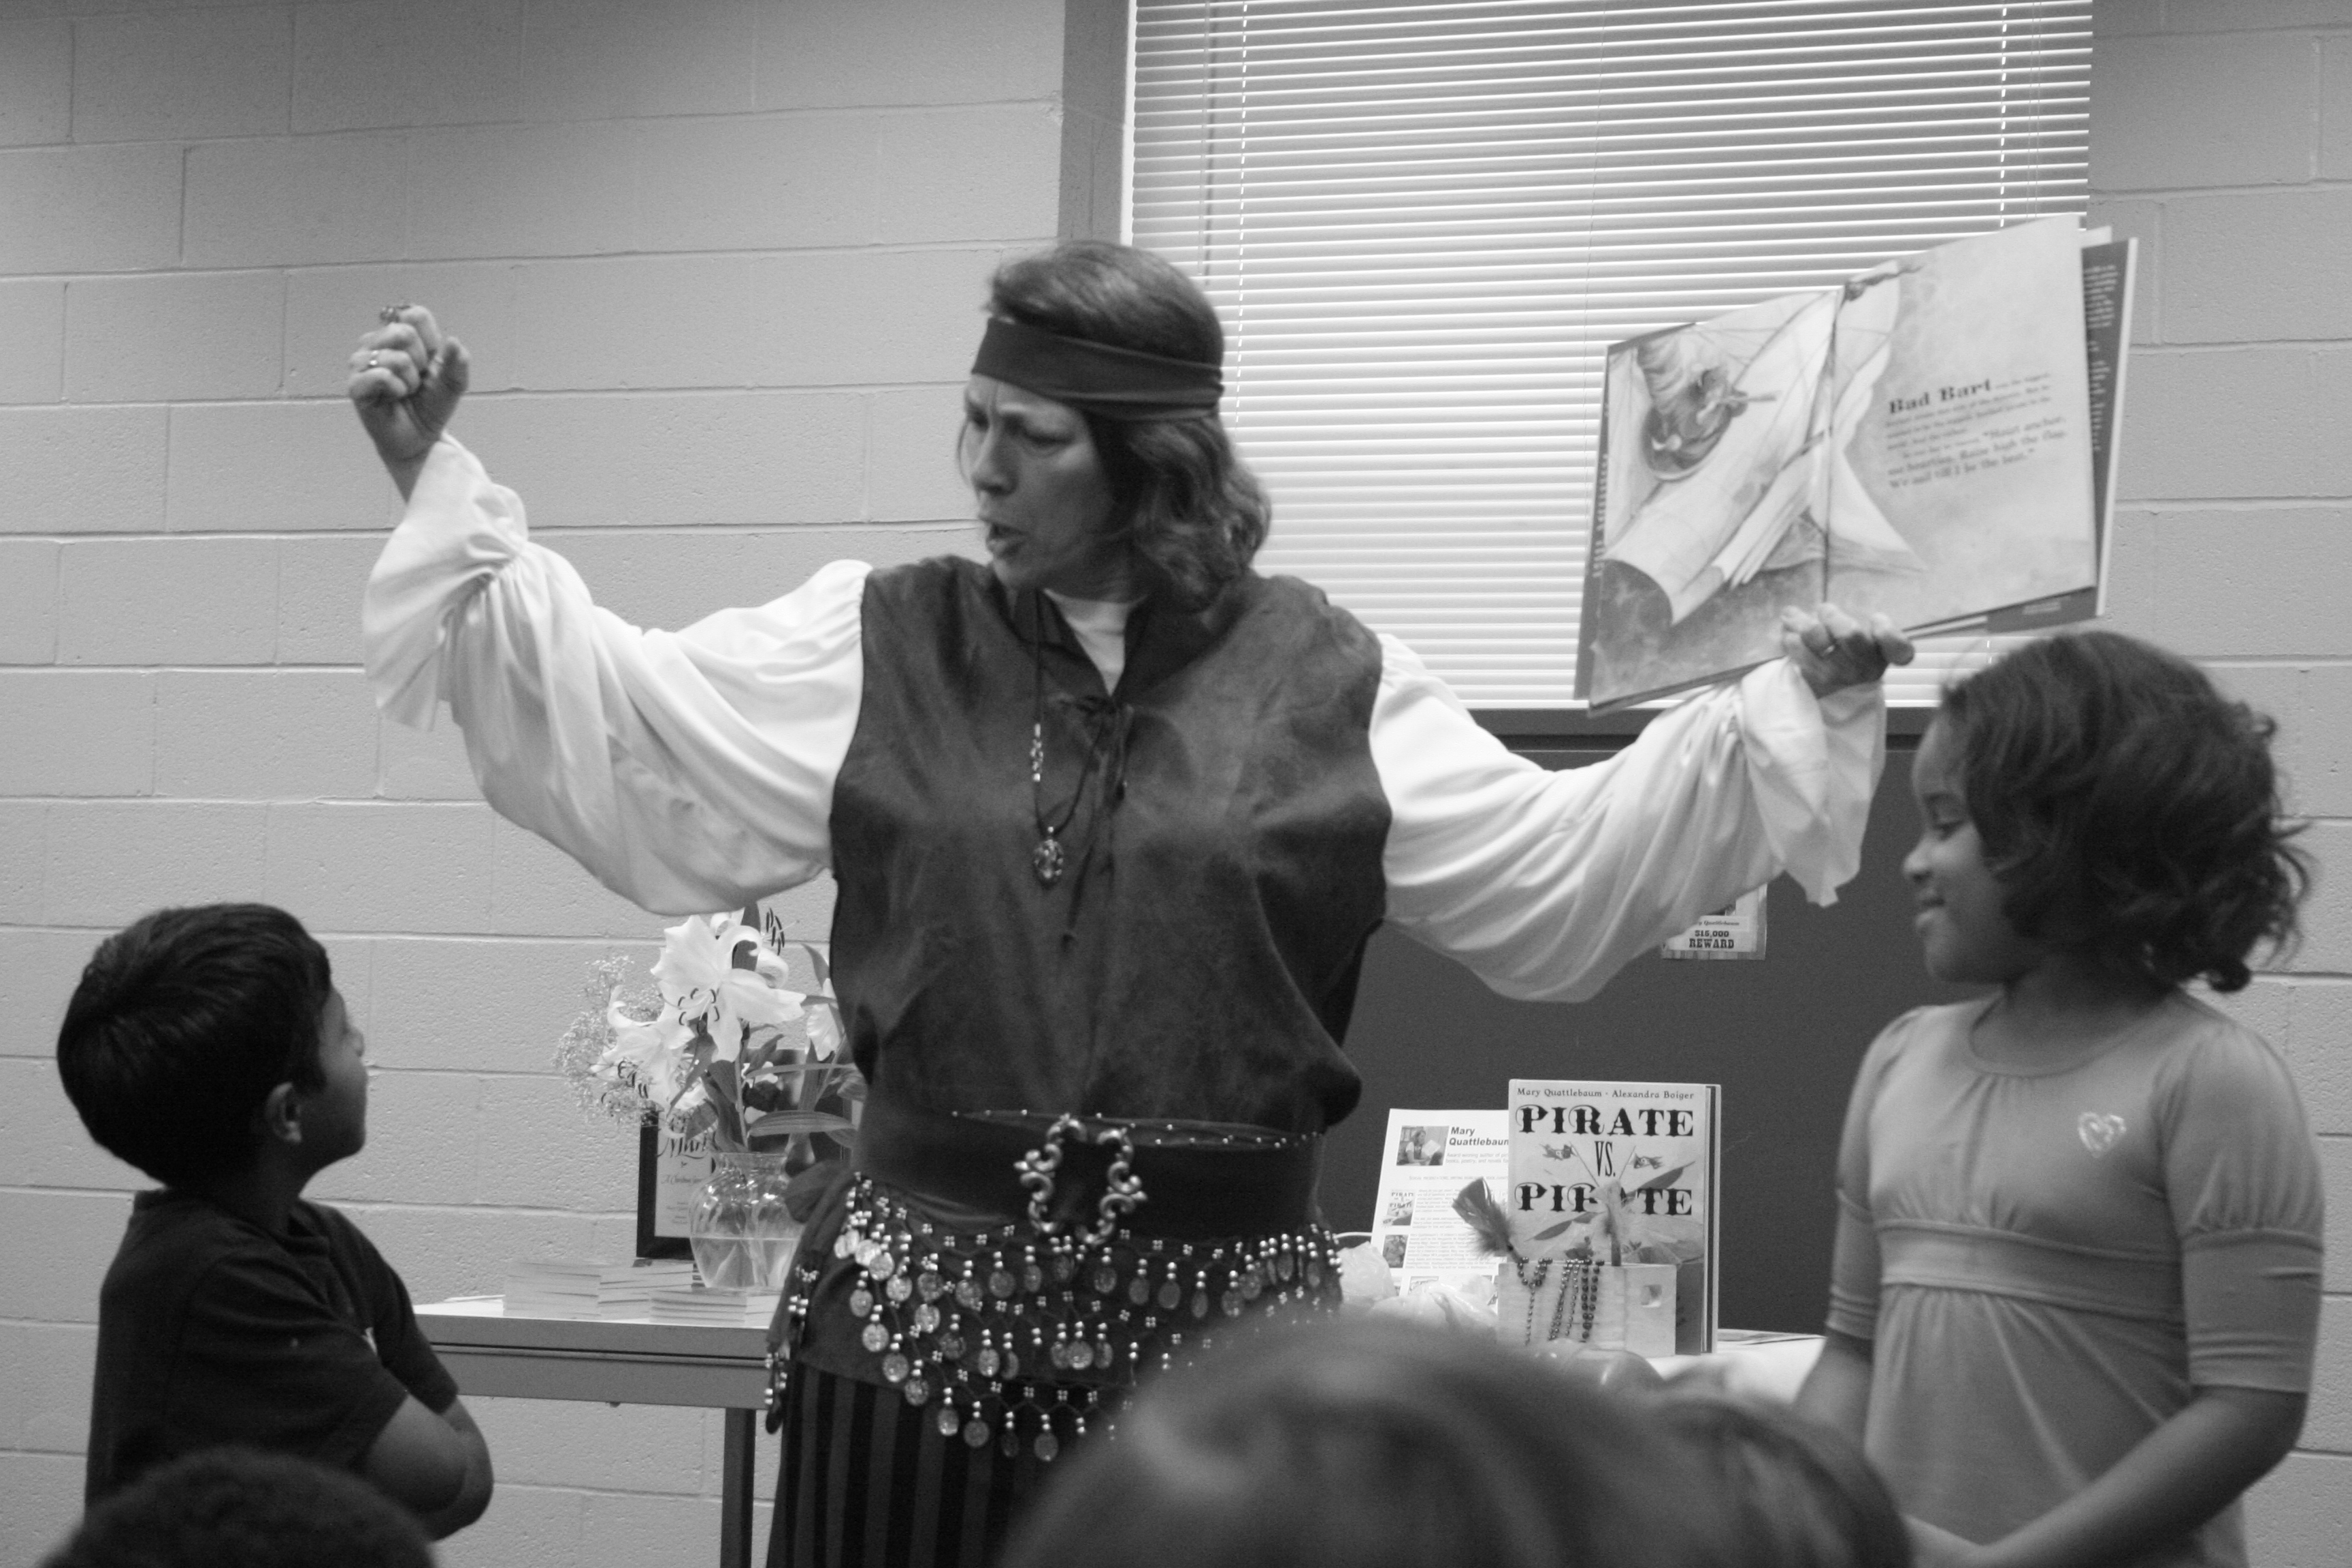 Mary and the two participants act out the story.